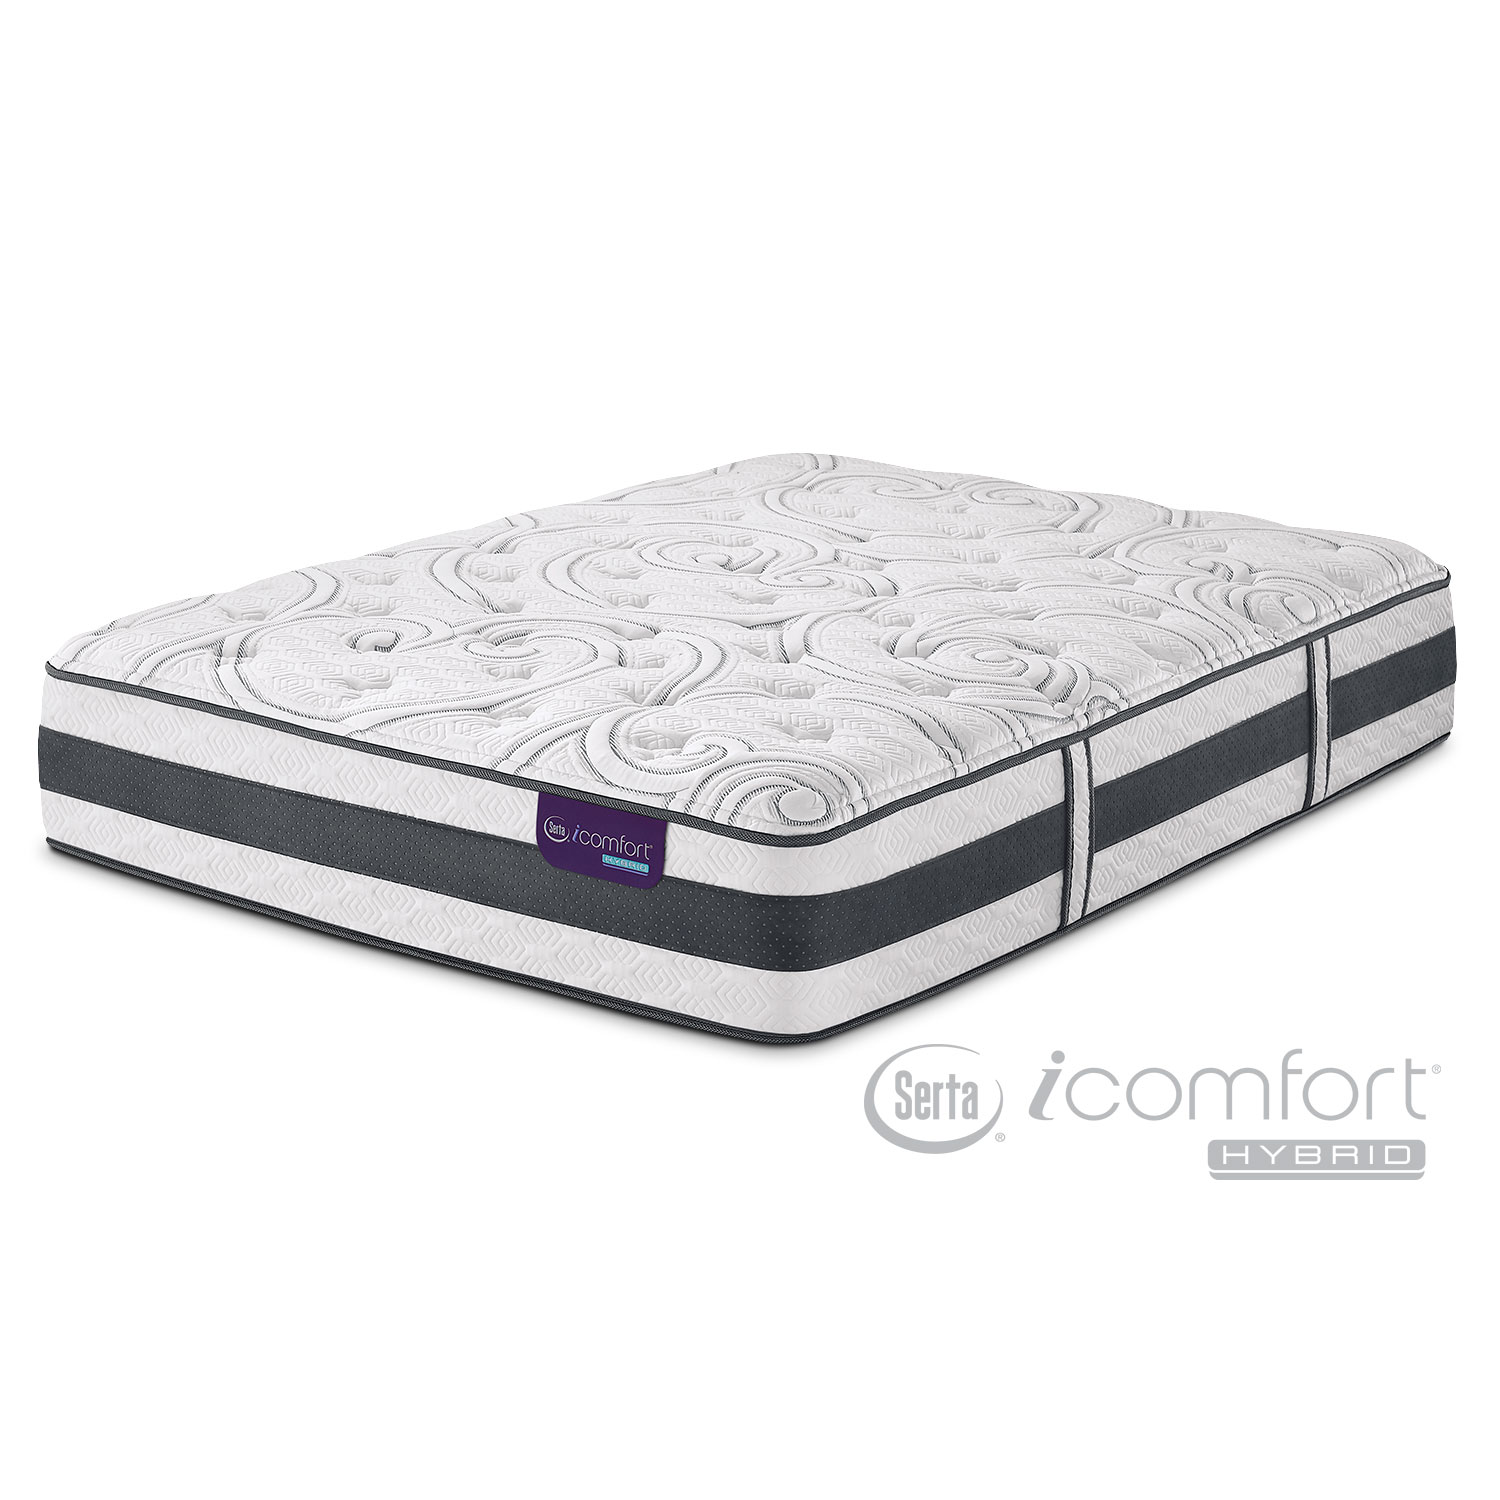 Applause II Plush California King Mattress